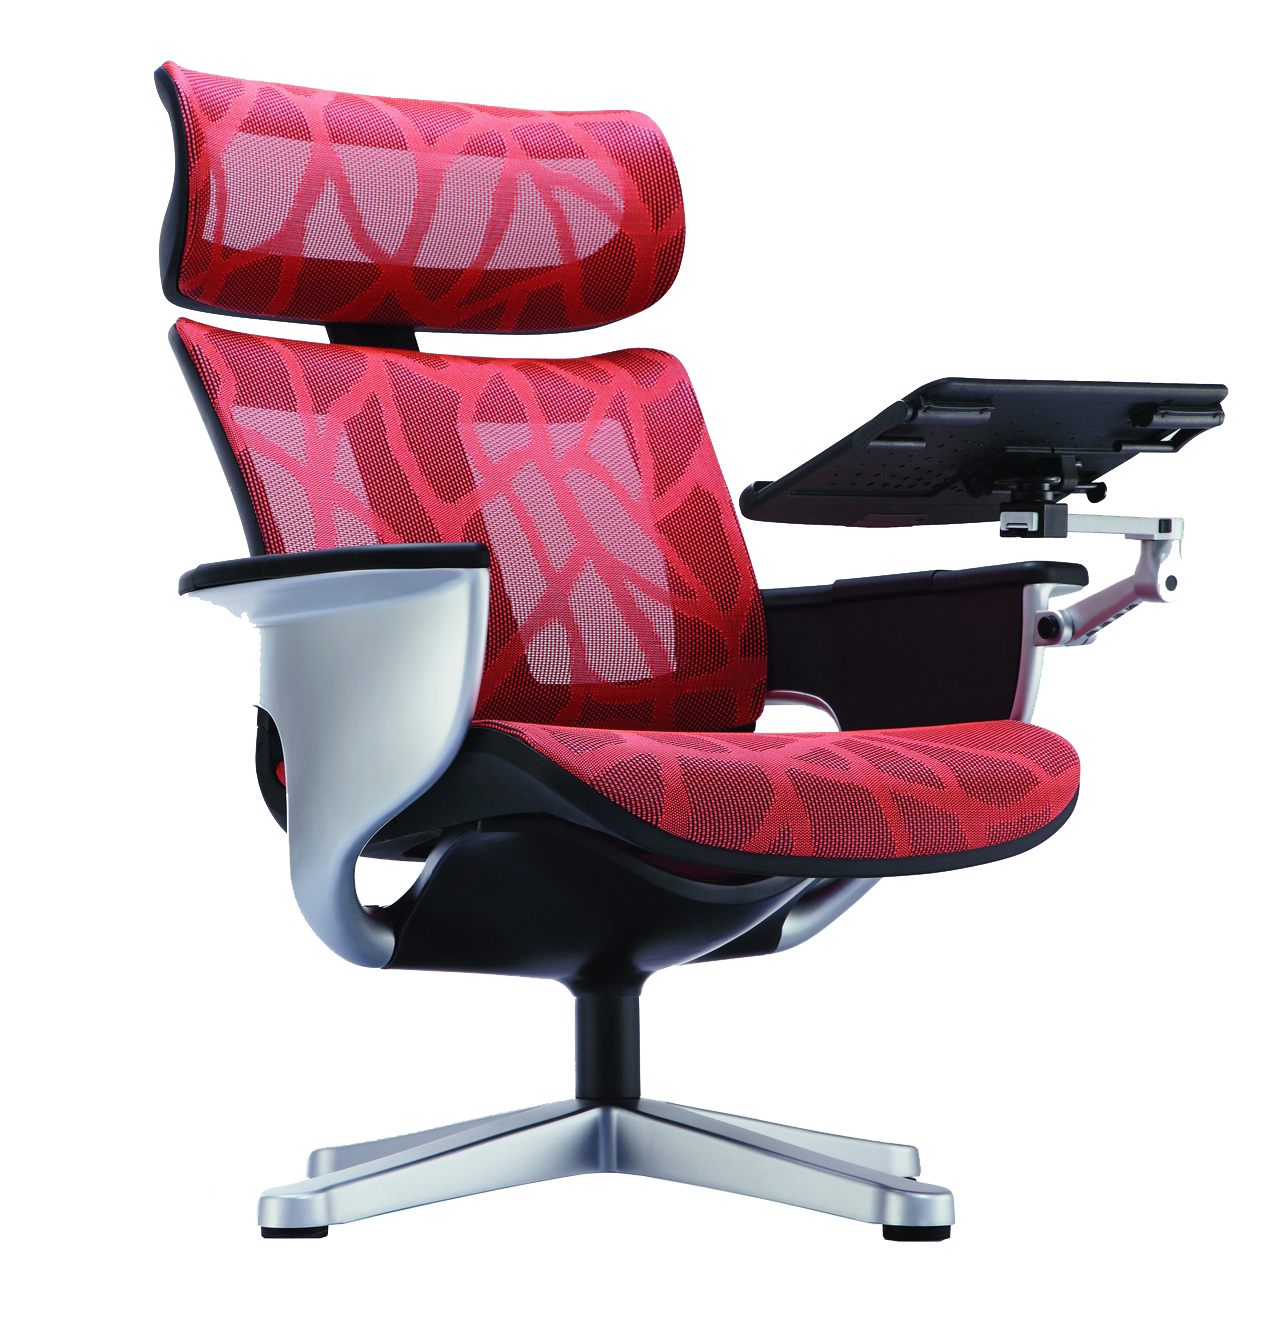 Ergohuman Mesh Chairs For The Office From For Sale Aus